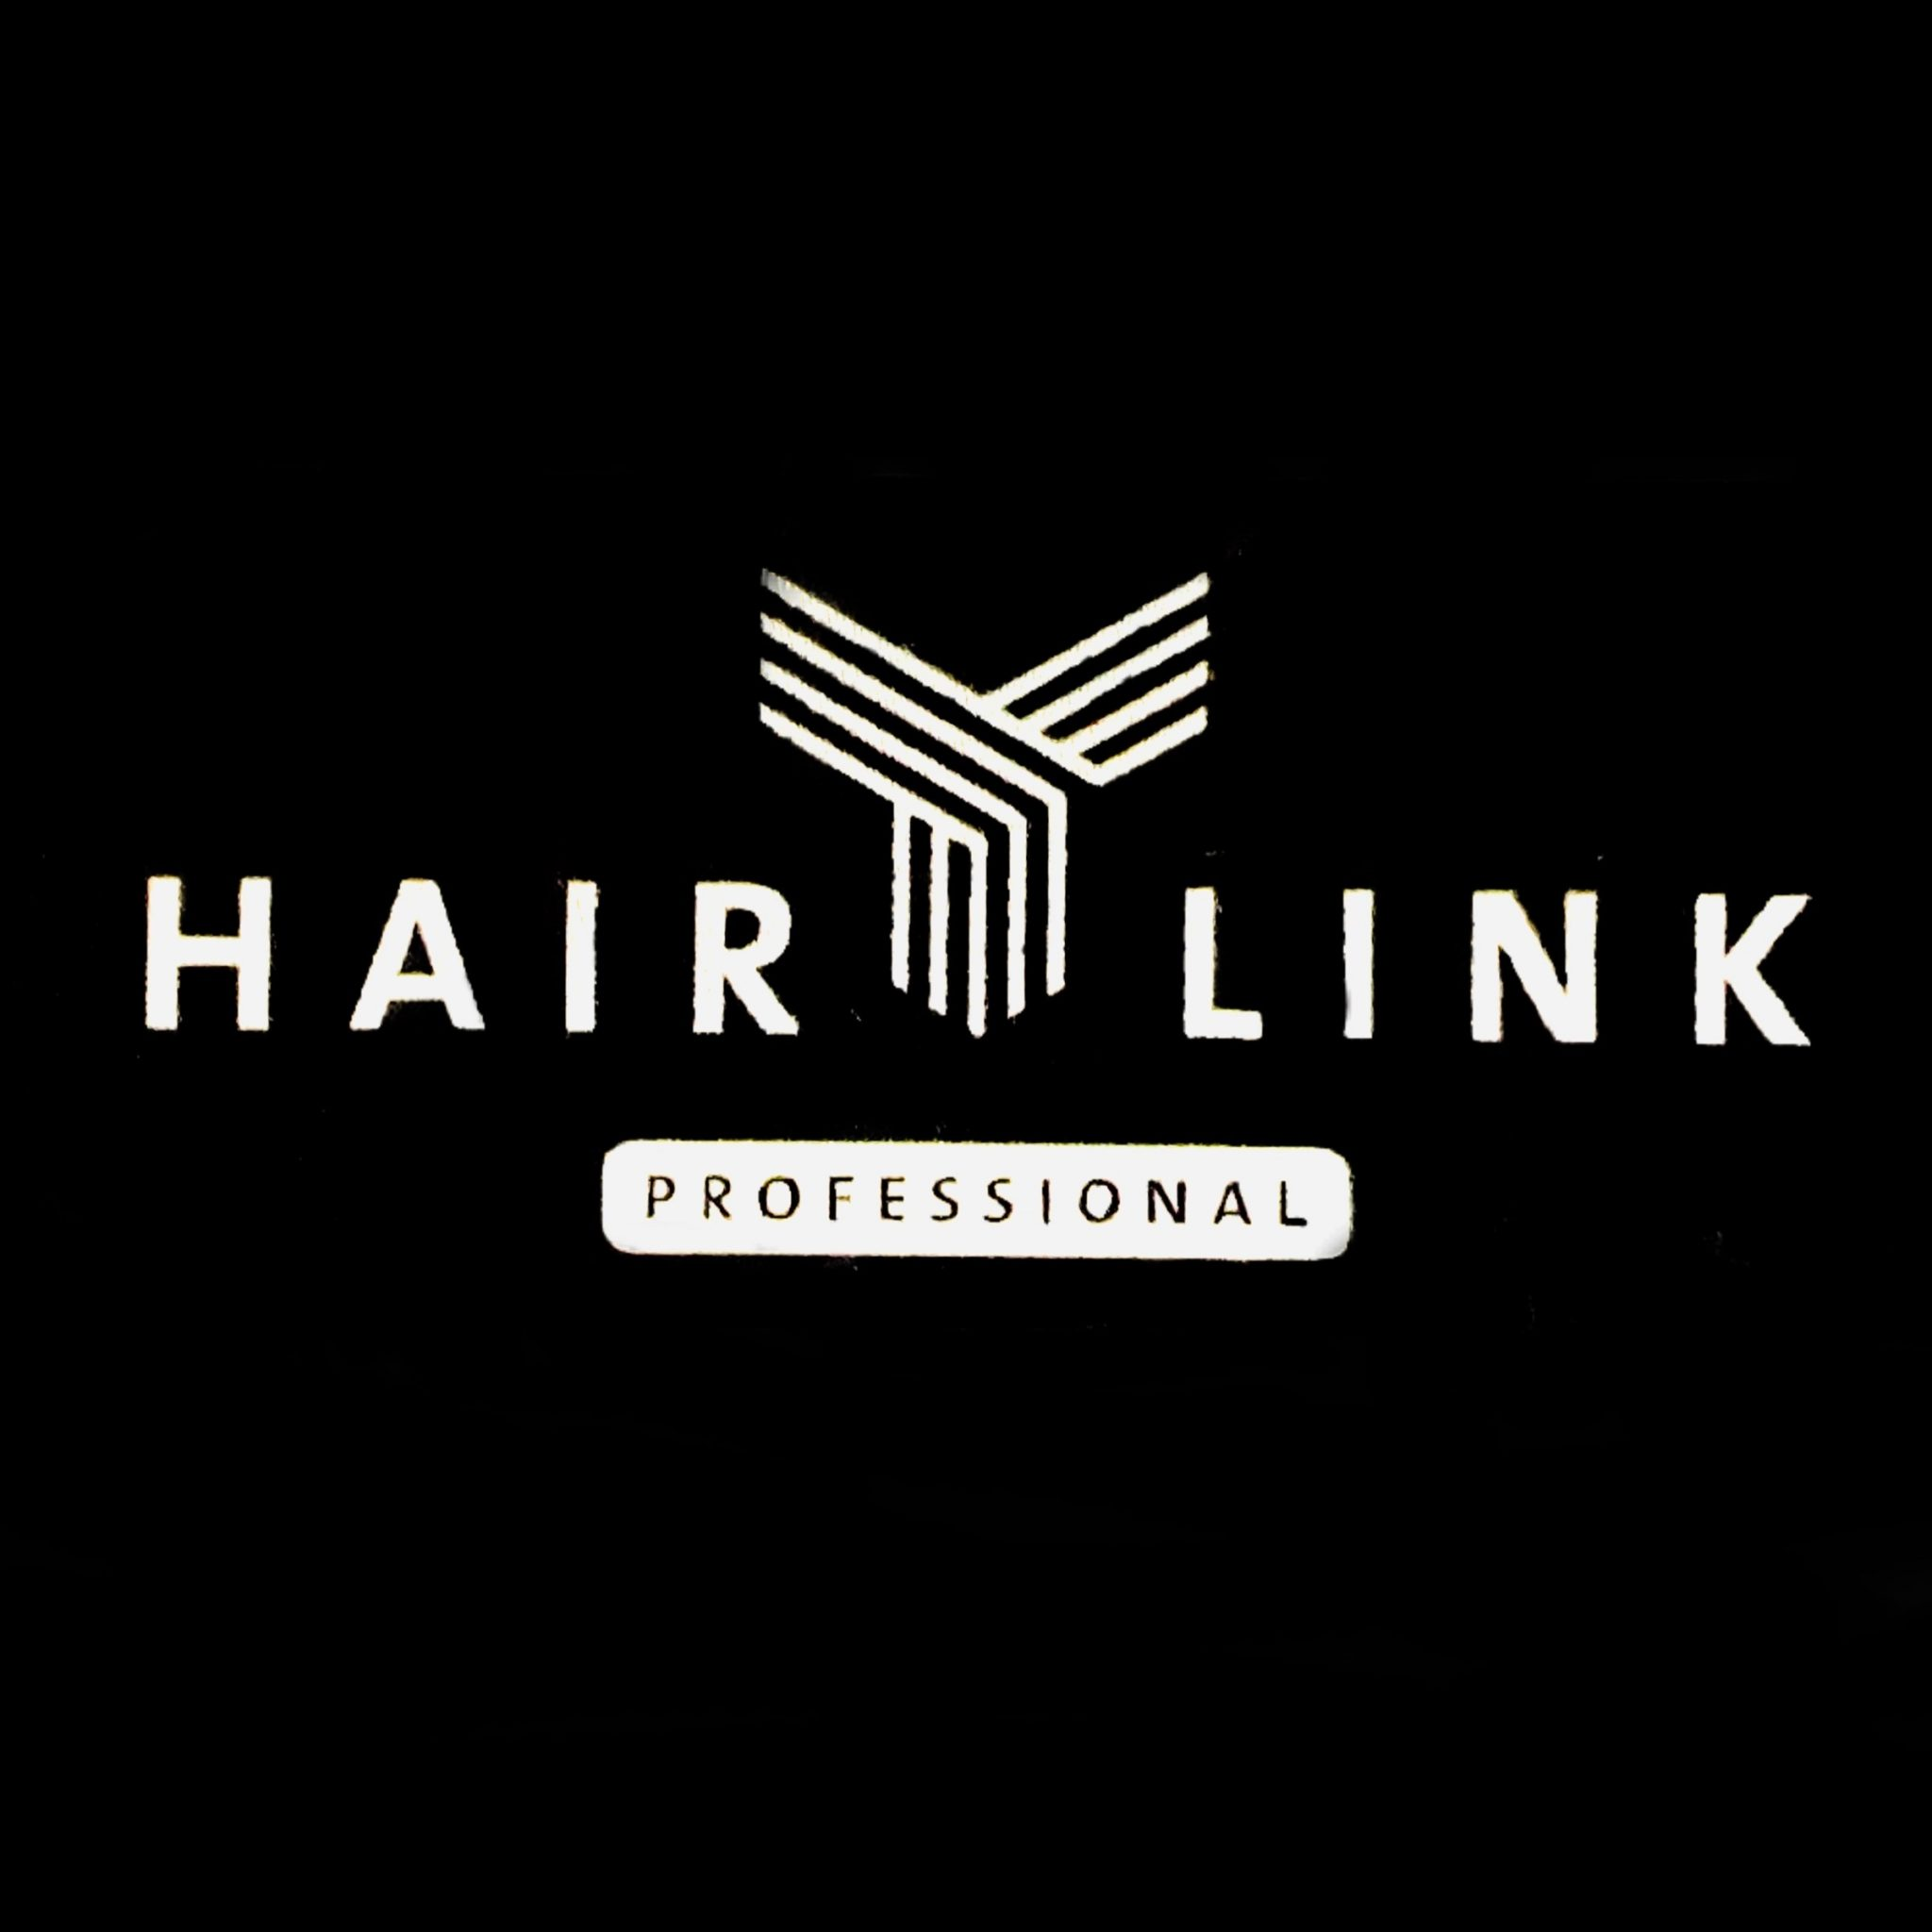 hairlink-2048x2048